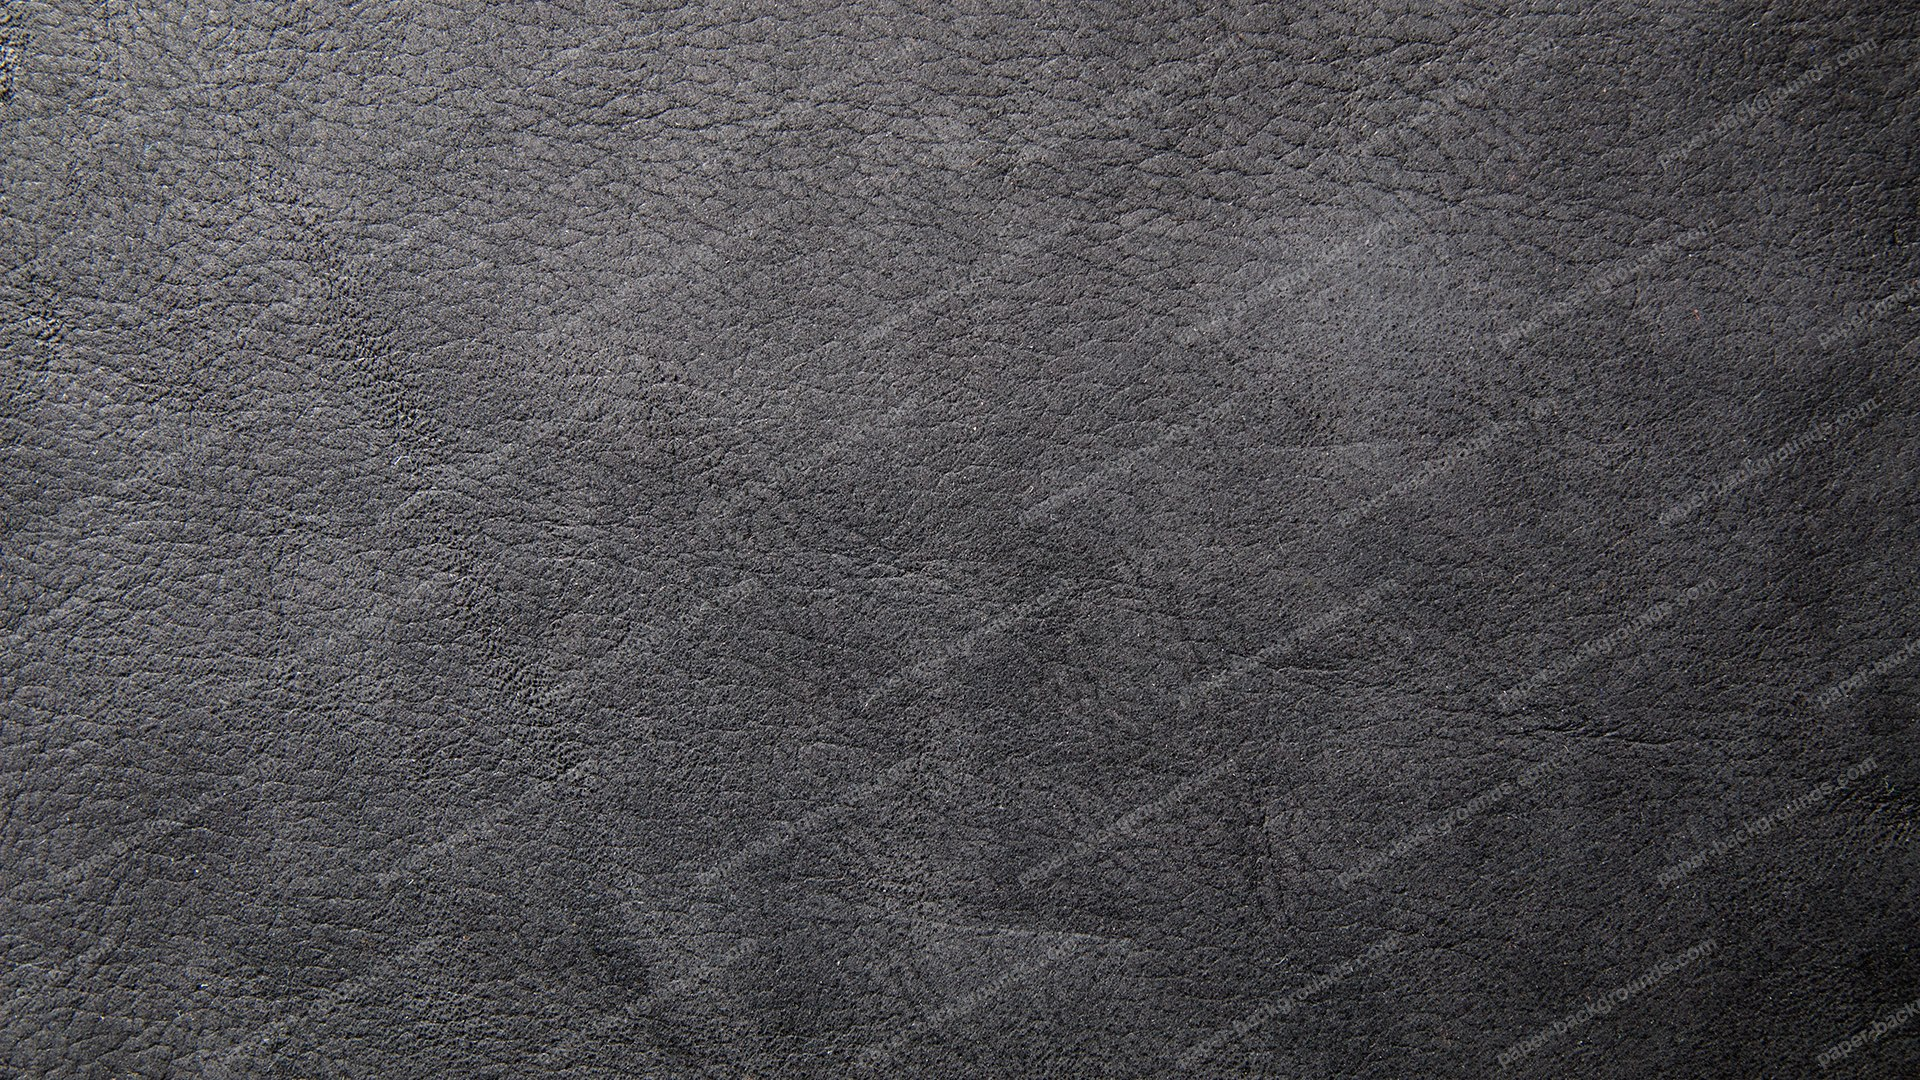 Black Leather Texture Background HD 1920 x 1080p